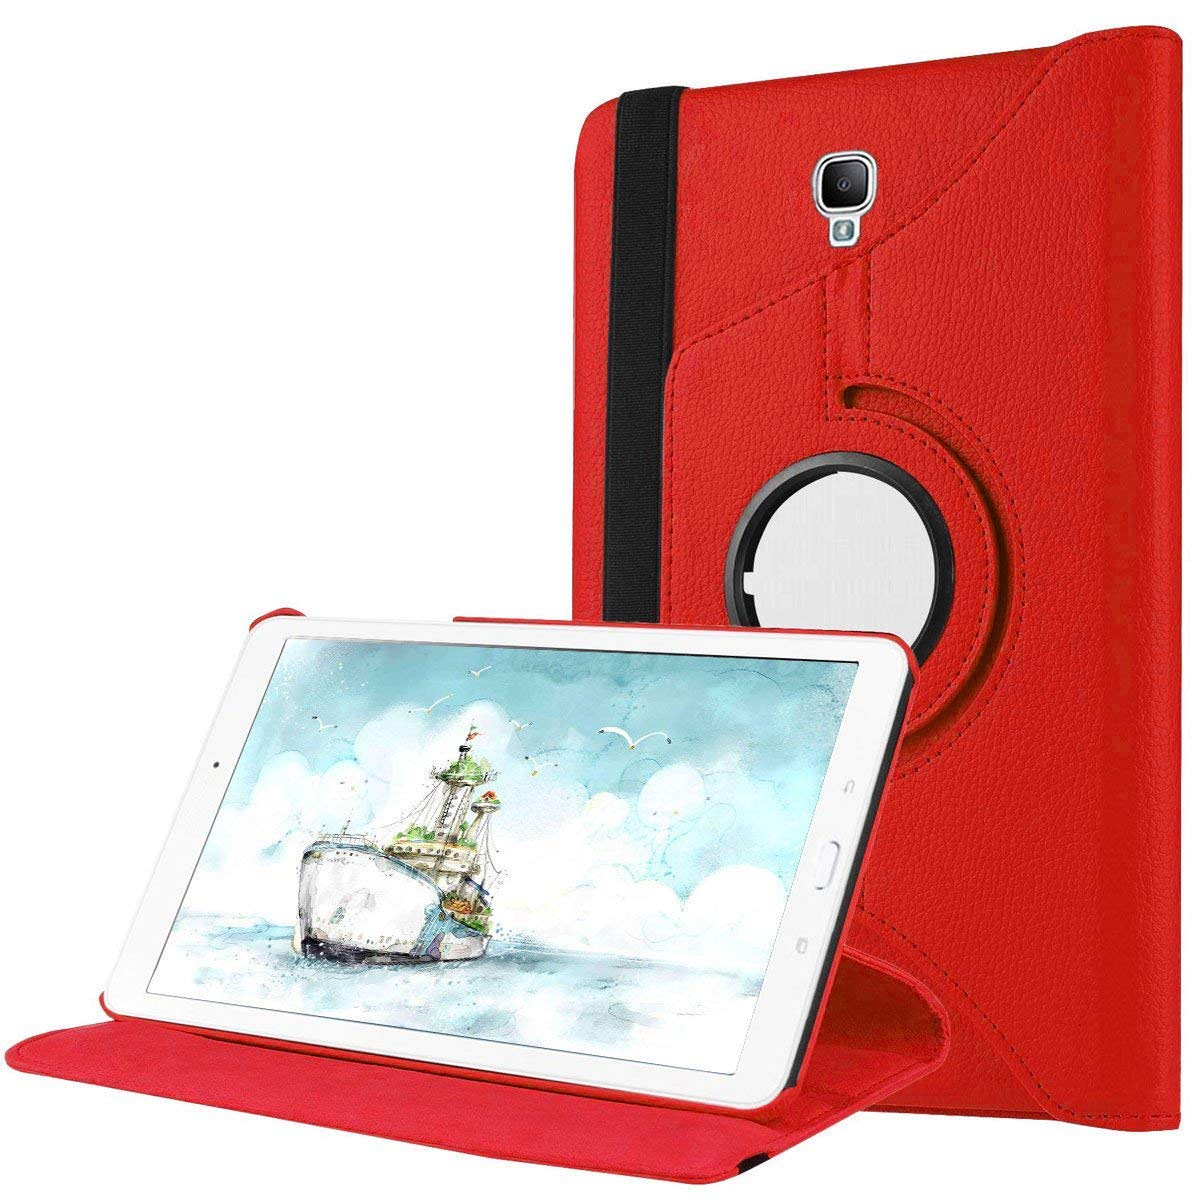 Case PU Leather For Samsung Galaxy Tab A 8.0 2017 T380 T385 Cover For SM-T380 SM-T385 8.0 Inch Tablet 360 Degree Rotating Funda